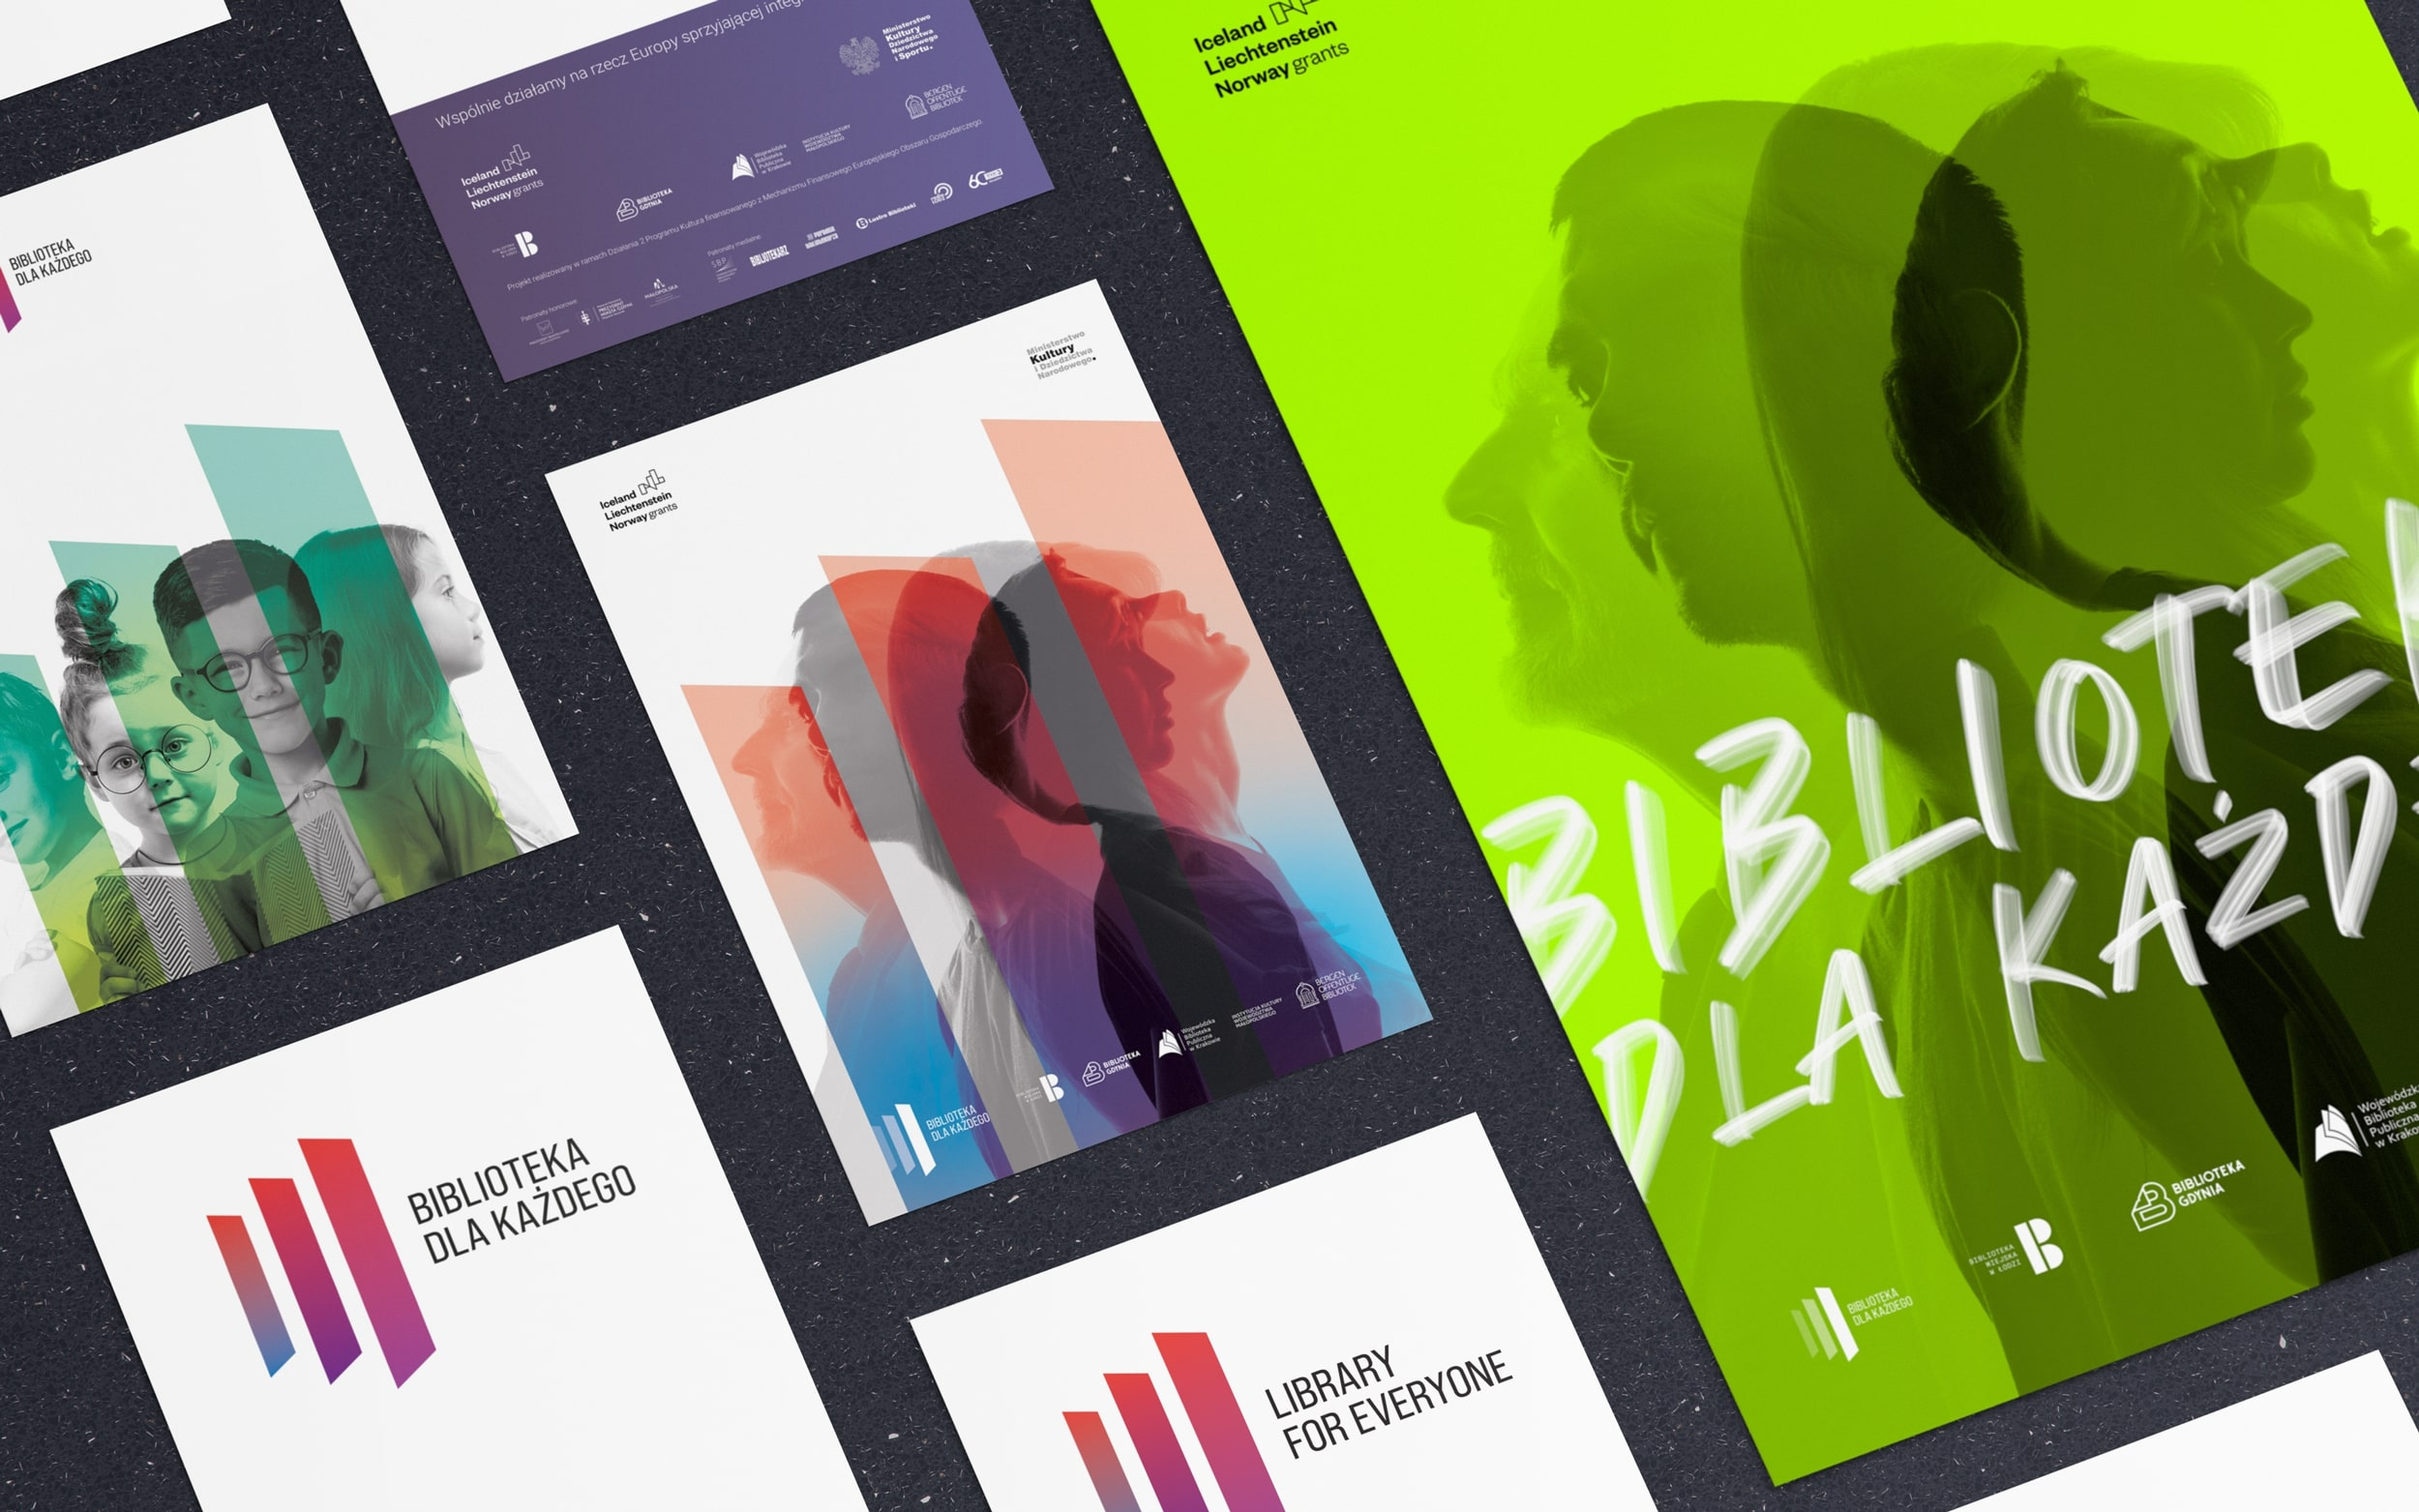 Creative Flow Create Gdynia Metropolitan Public Library Branding and Promotion